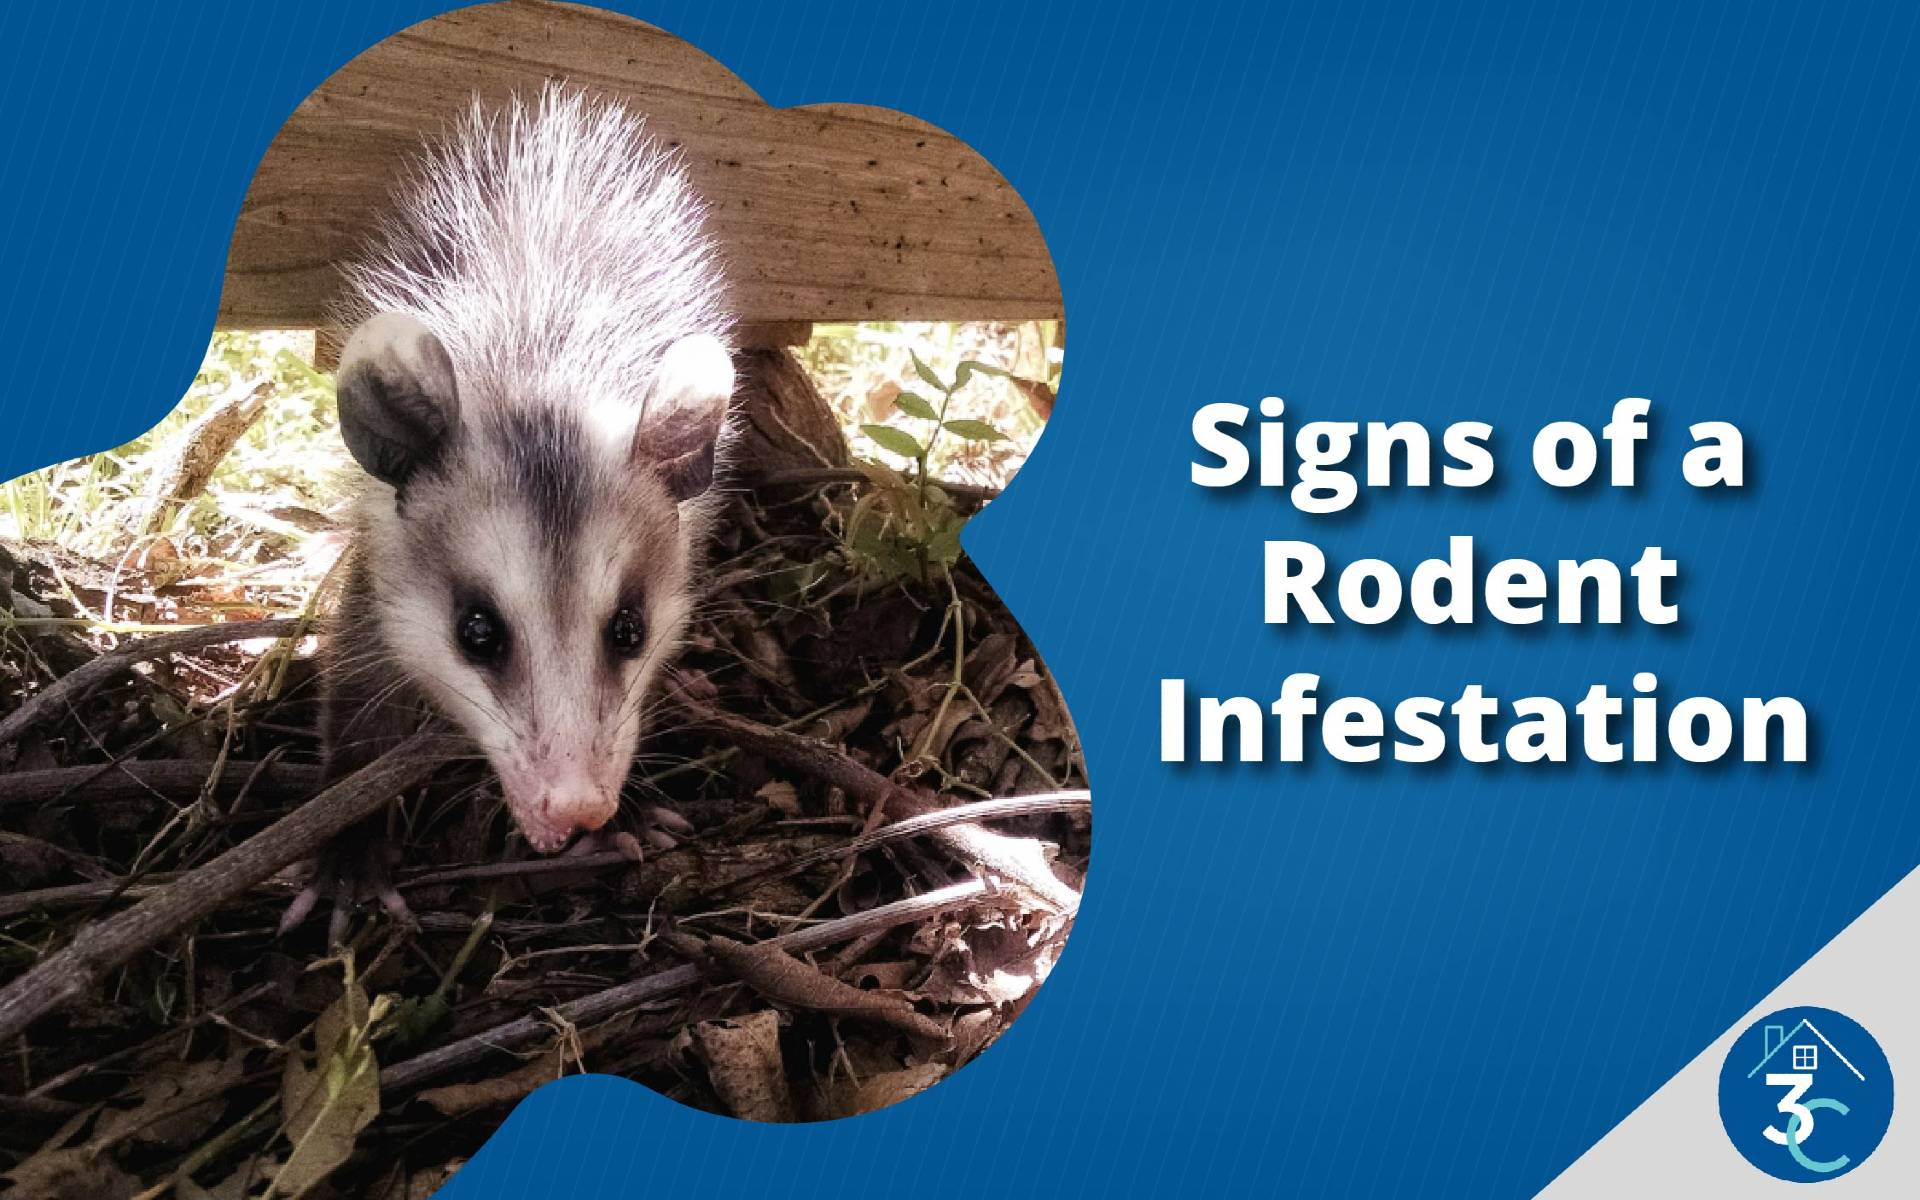 Signs of a Rodent Infestation